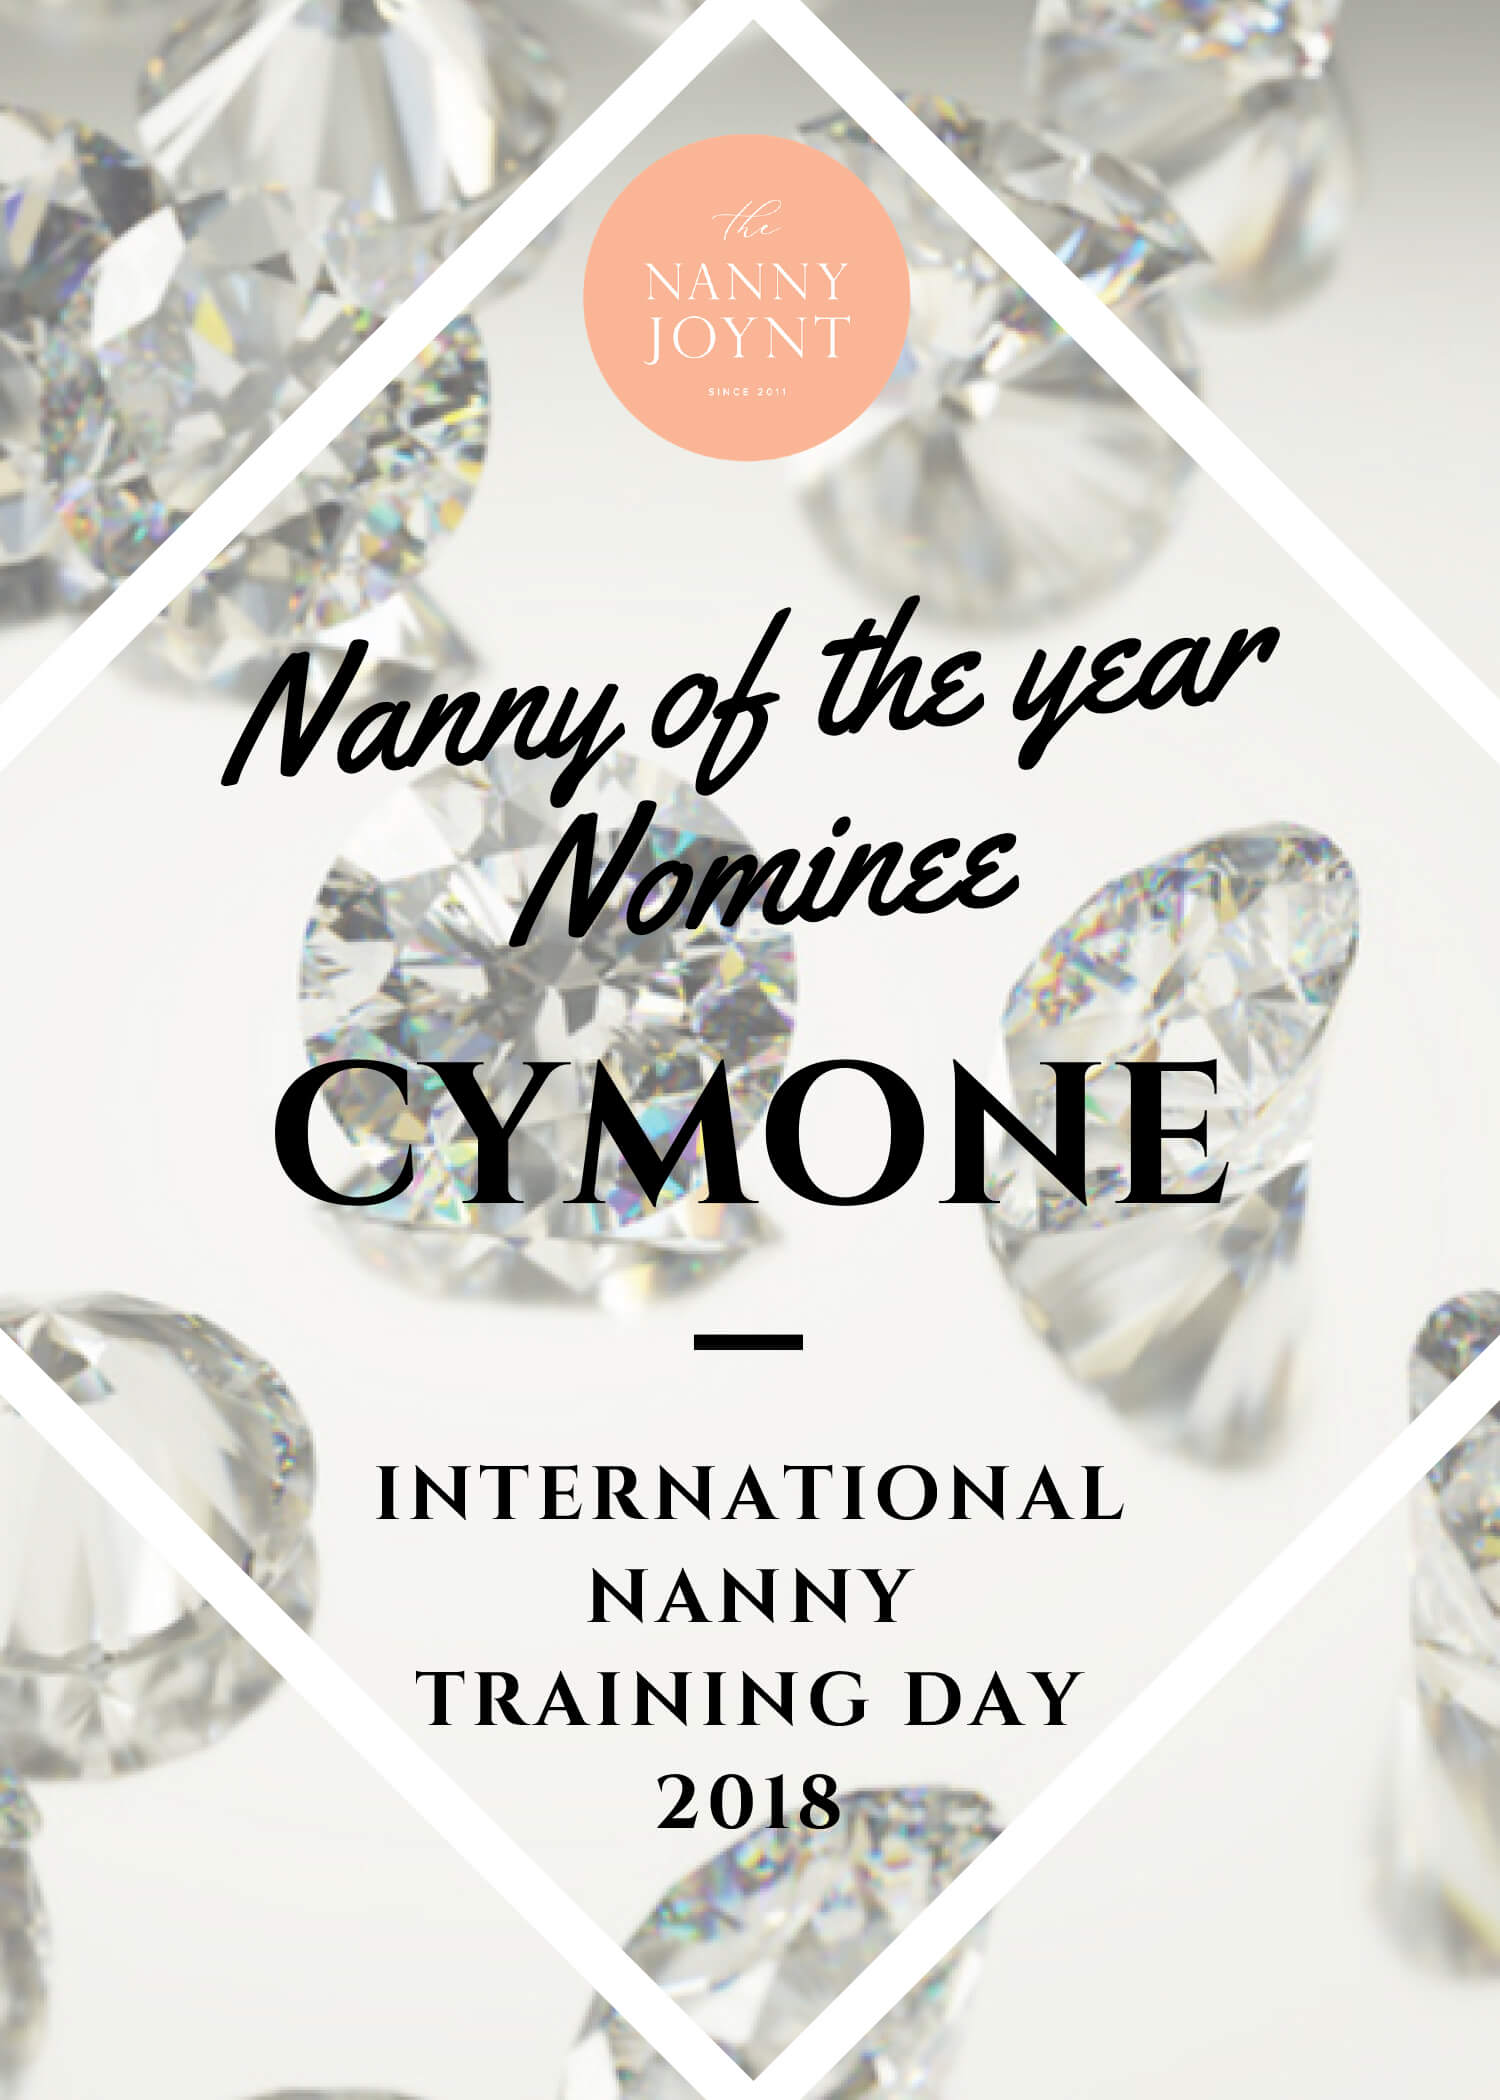 iNNTD Arizona Nanny Of The Year Nominee – Cymone